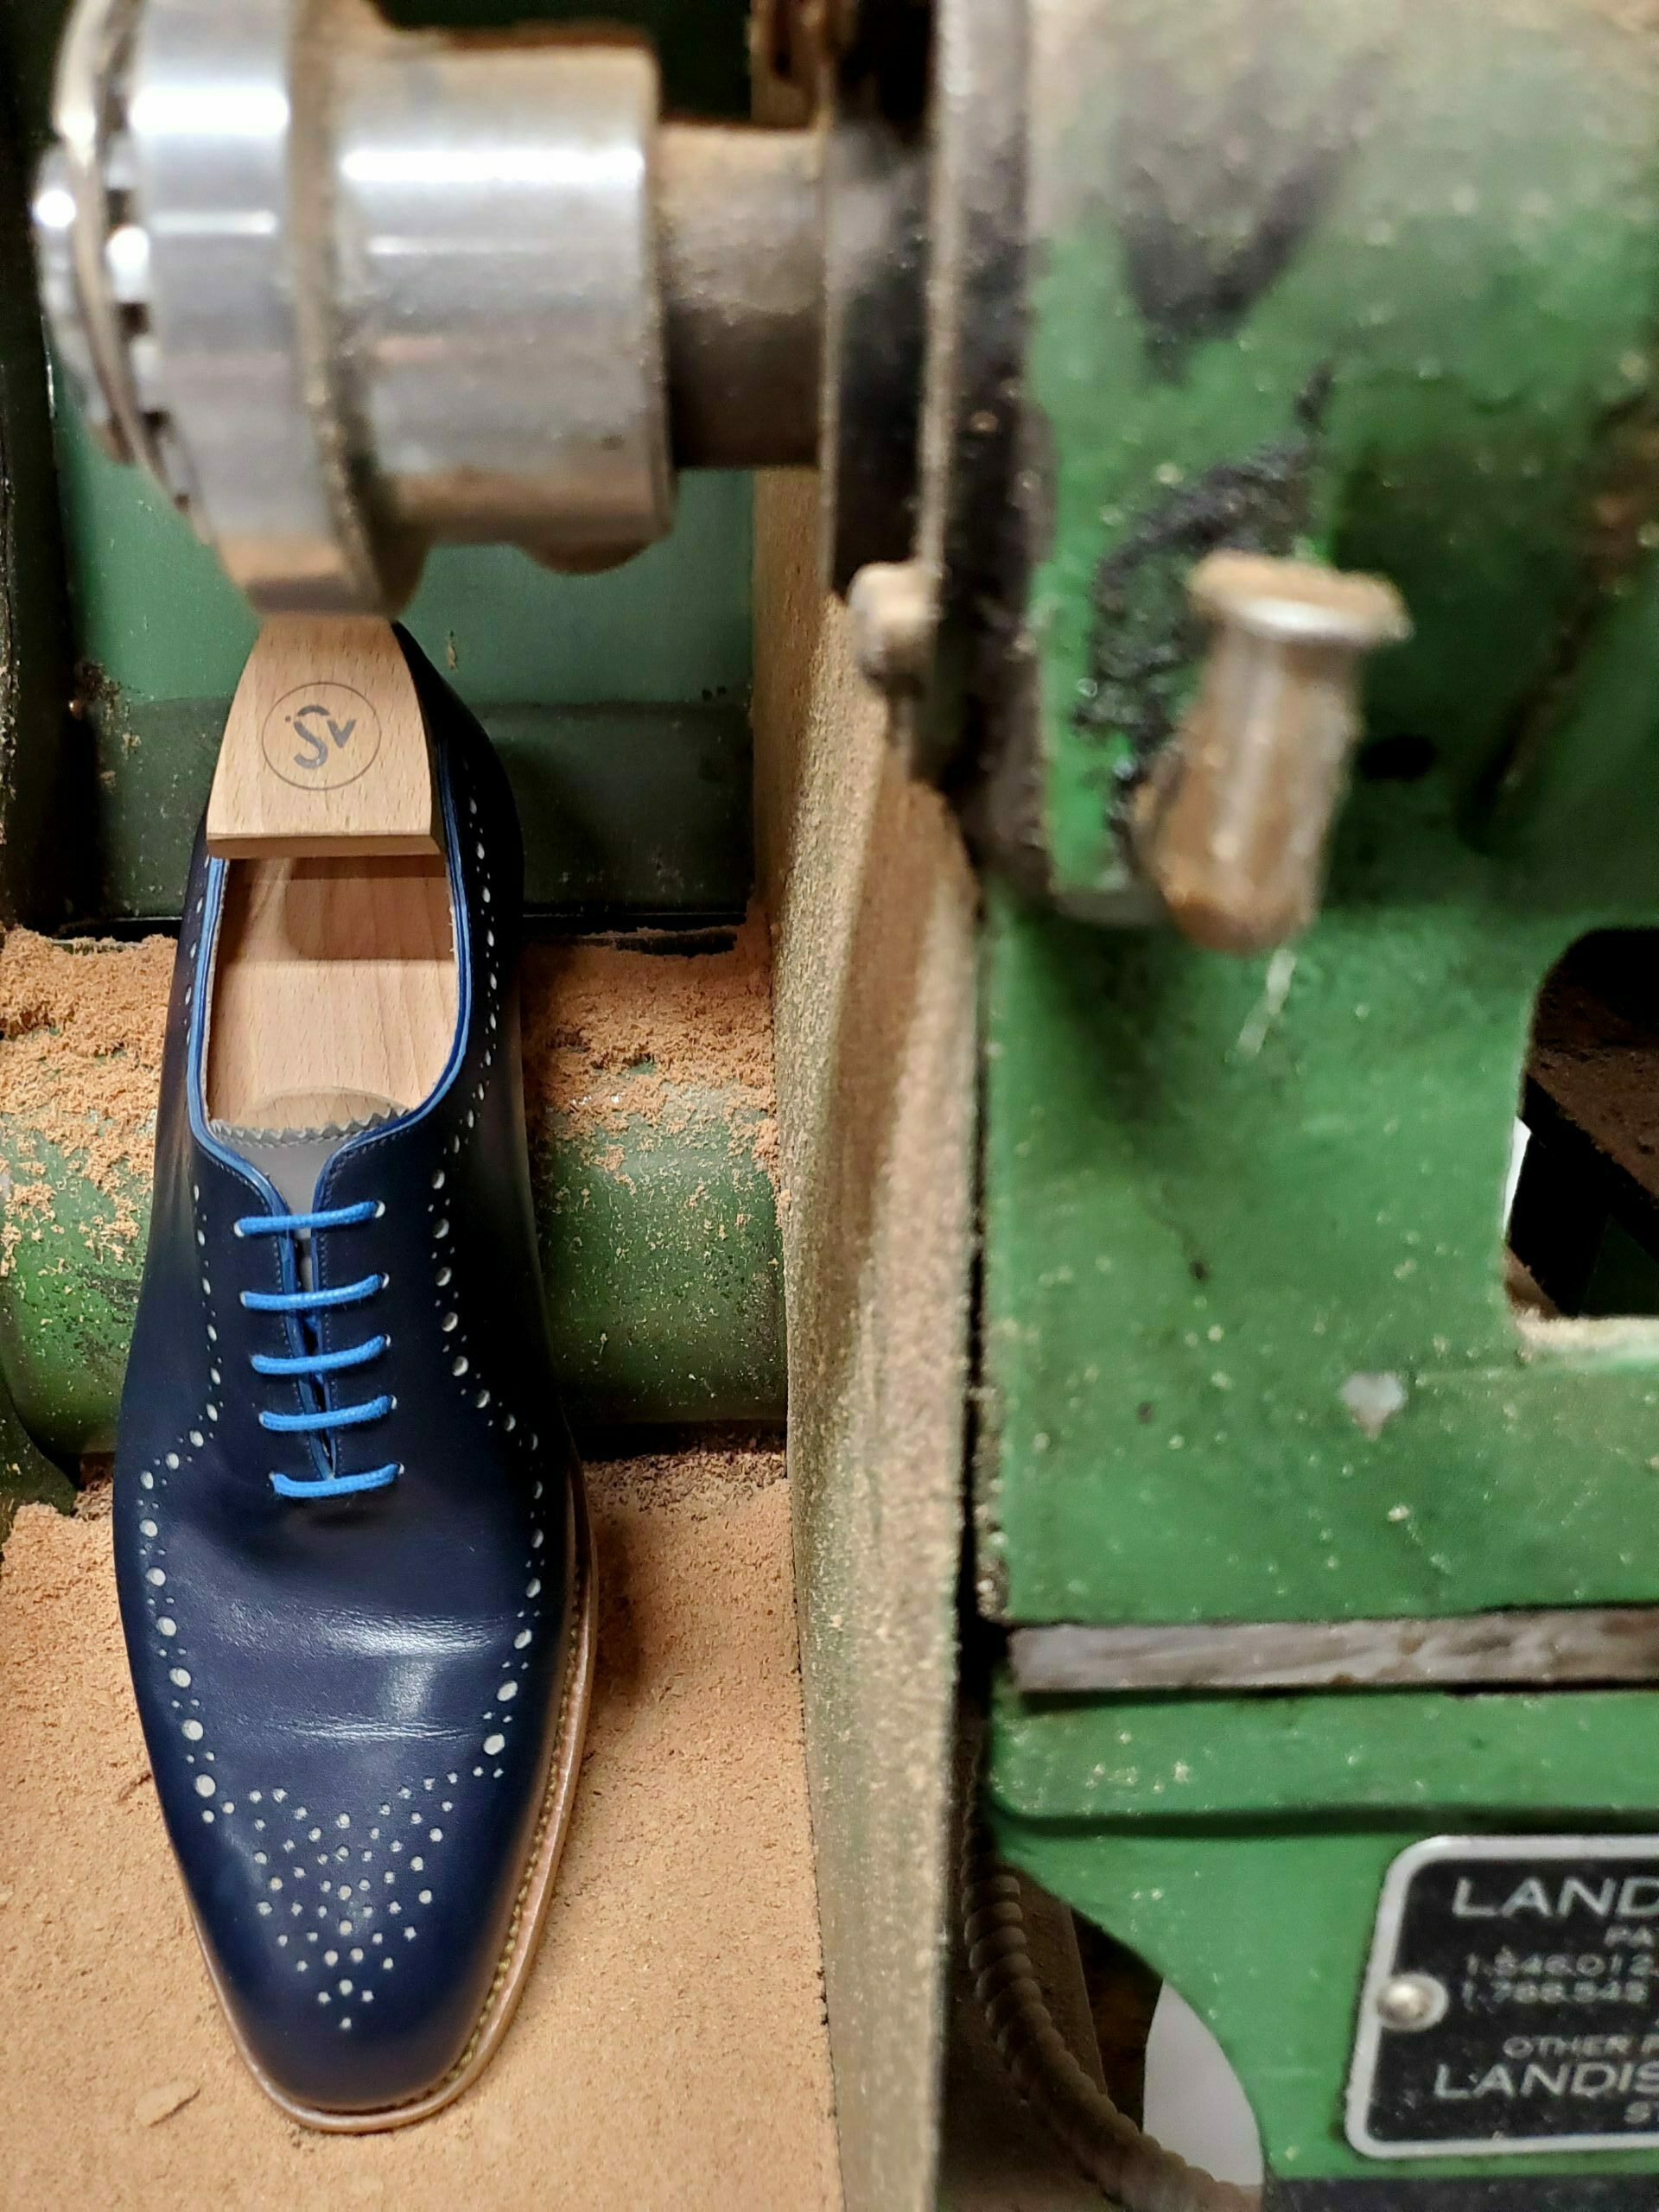 a blue bespoke shoe on a machine